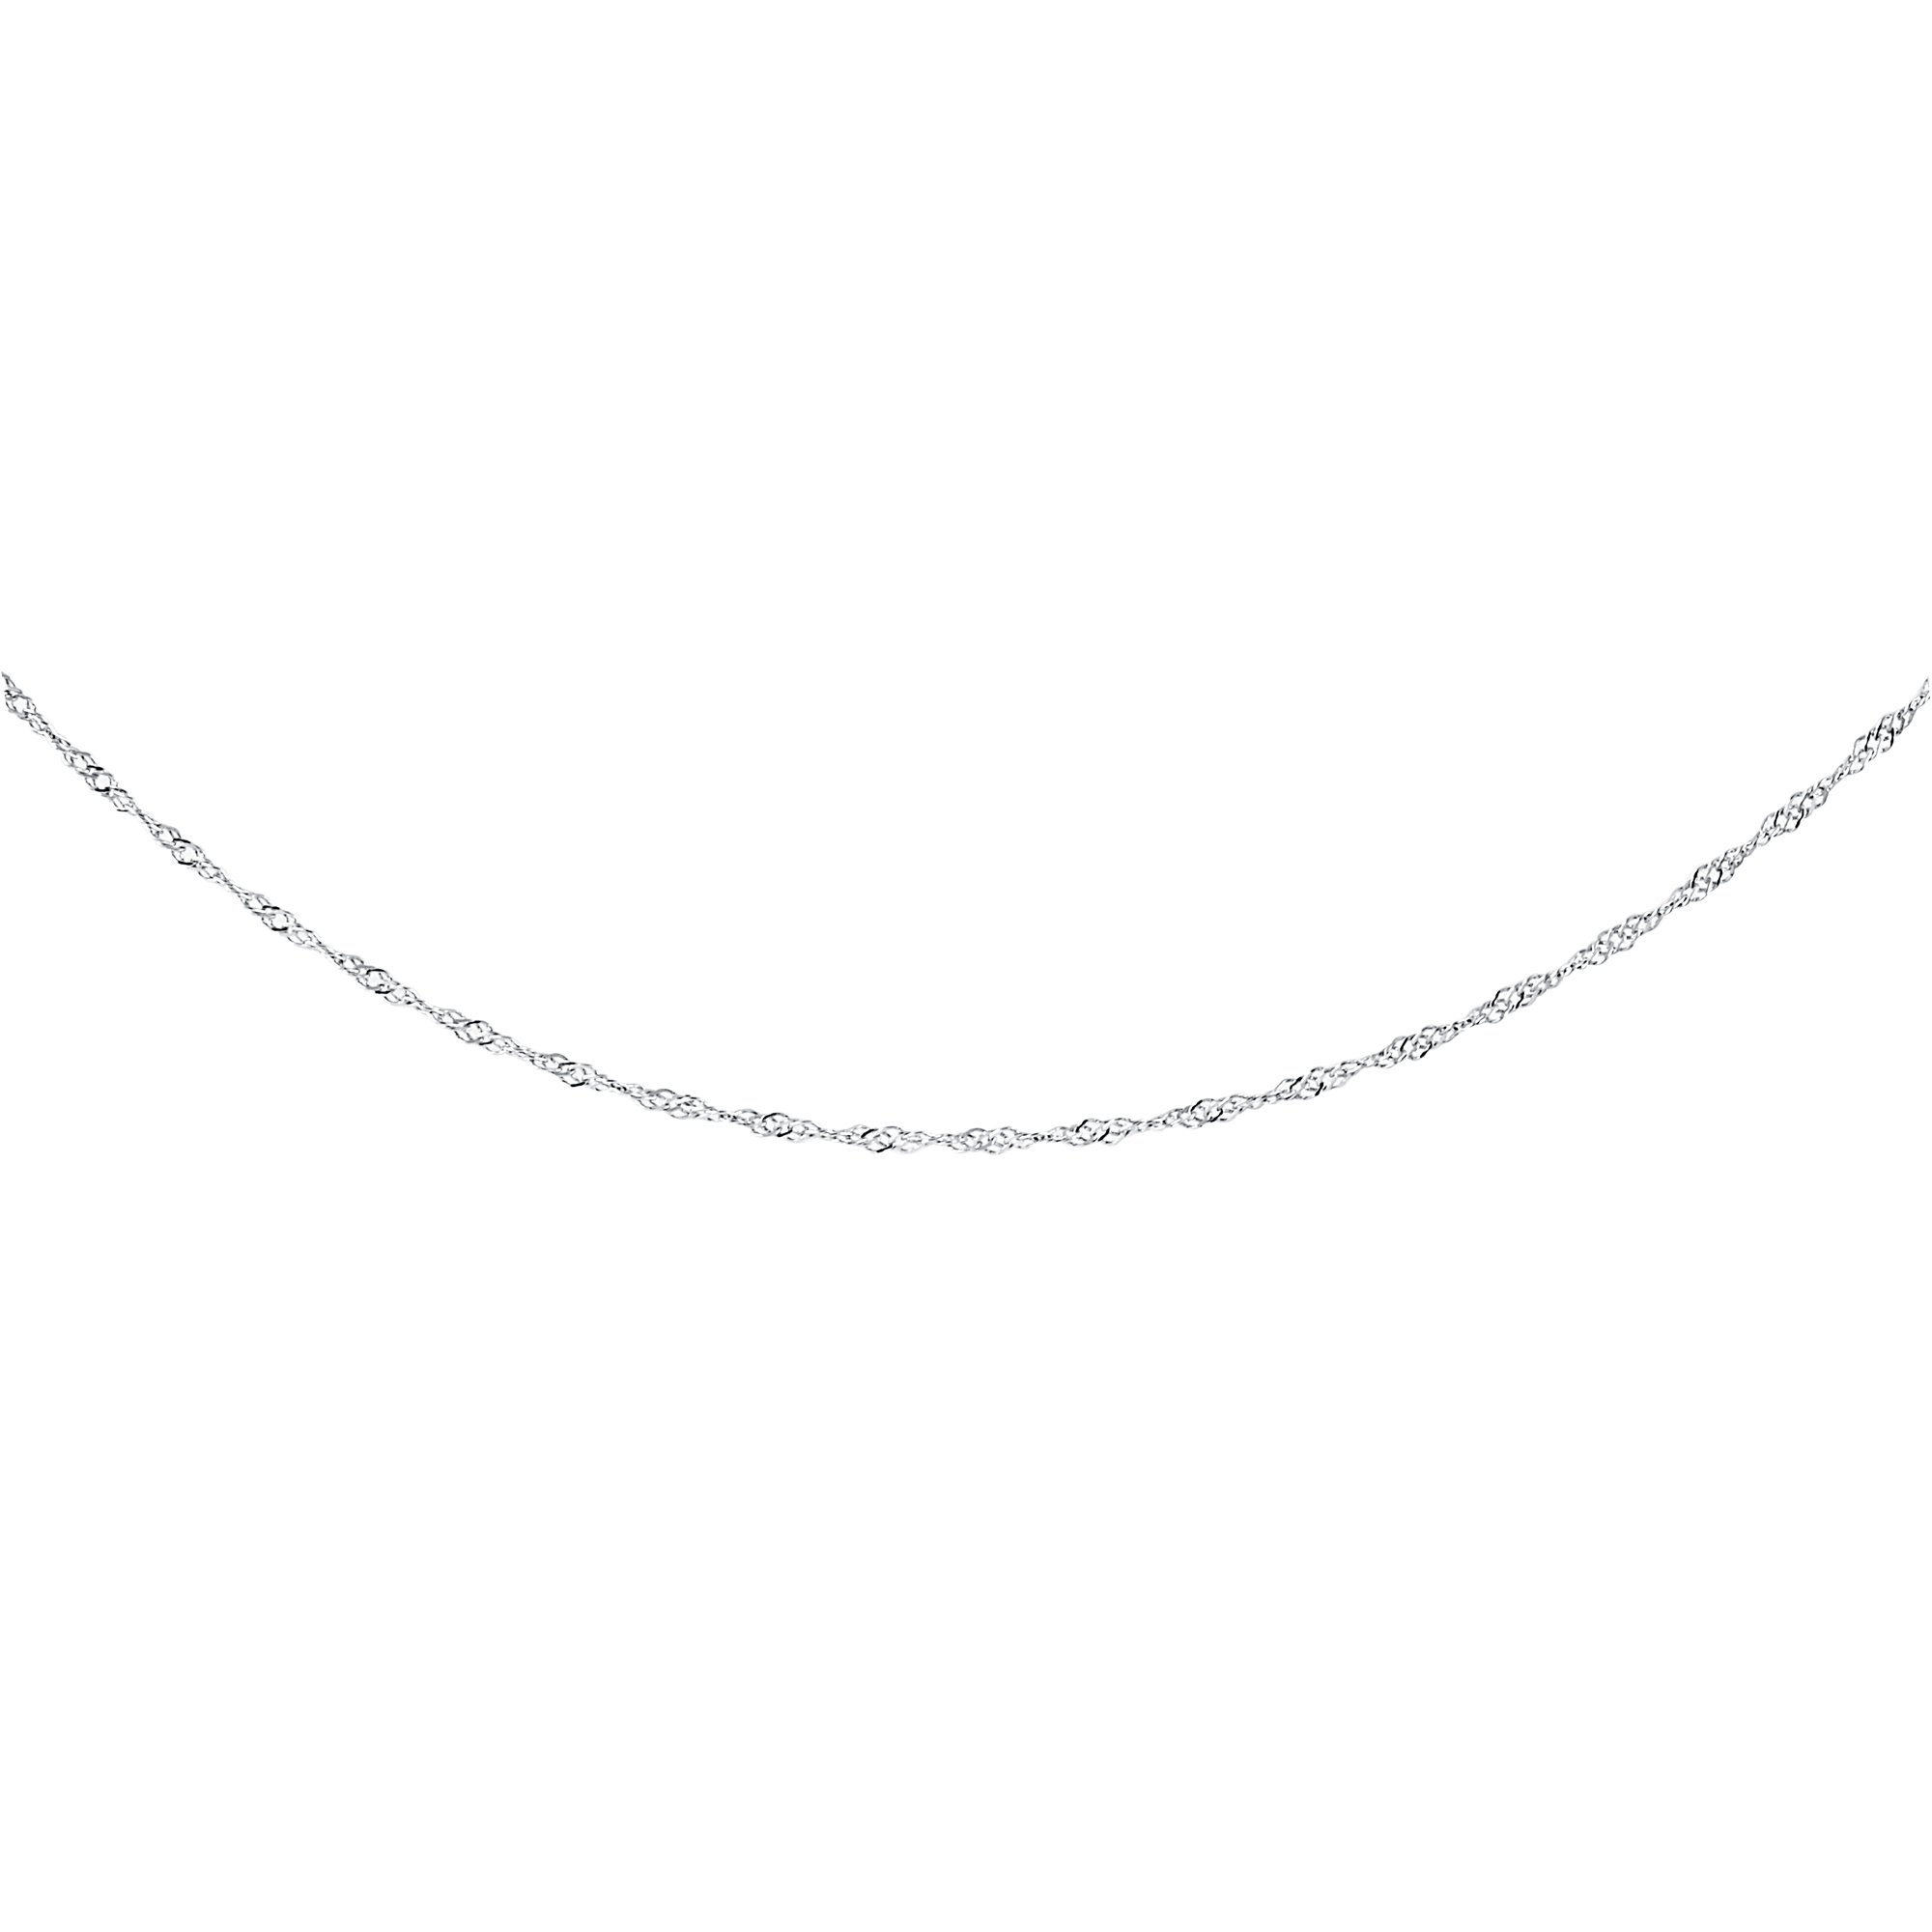 16'' Singapore Chain for ladies - 10K white Gold